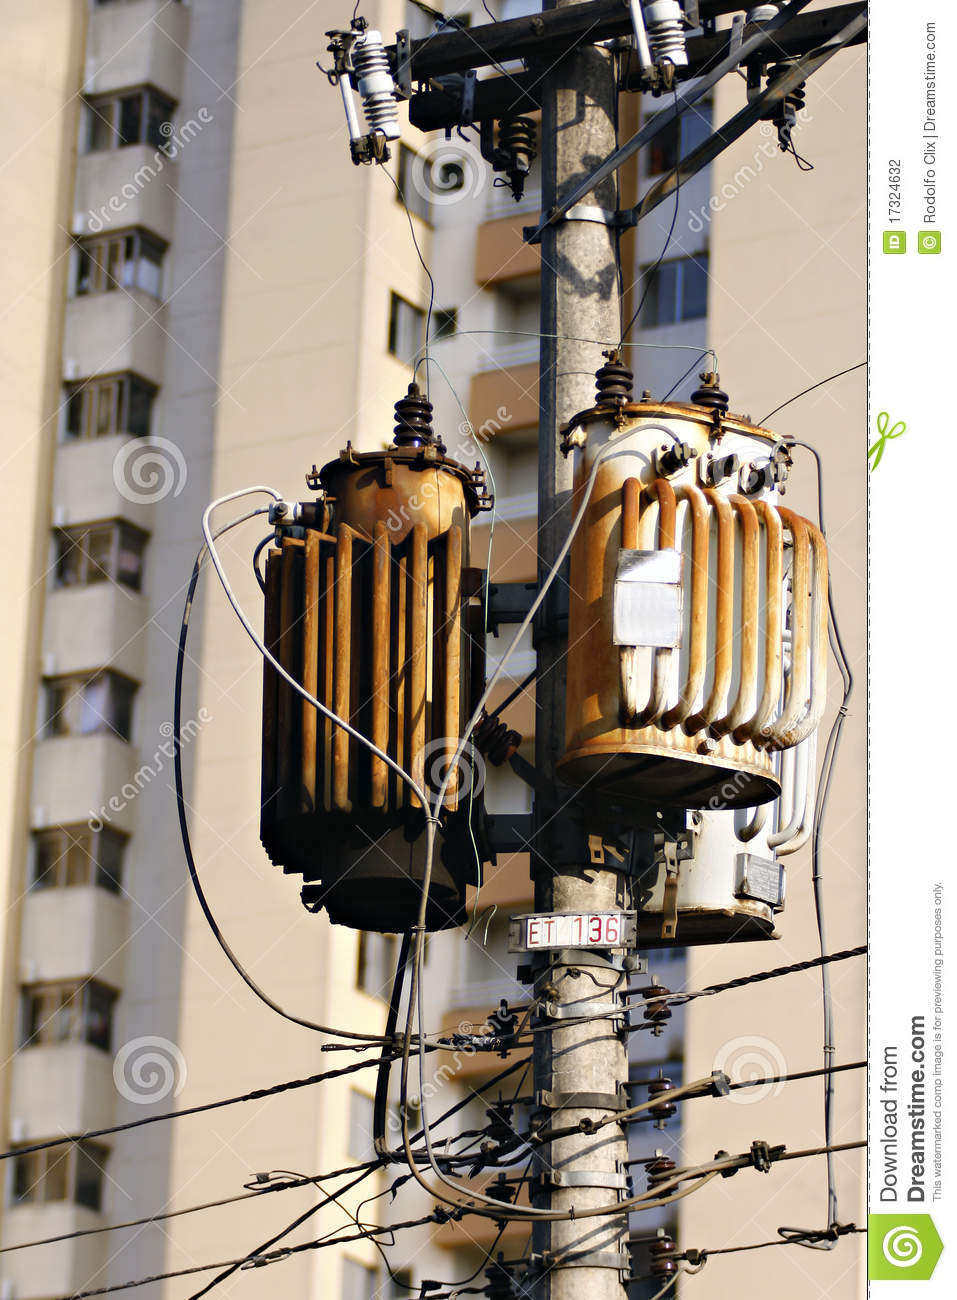 Electrical Transformer On Pole Stock Photo Image Of Wiring Transformers Together